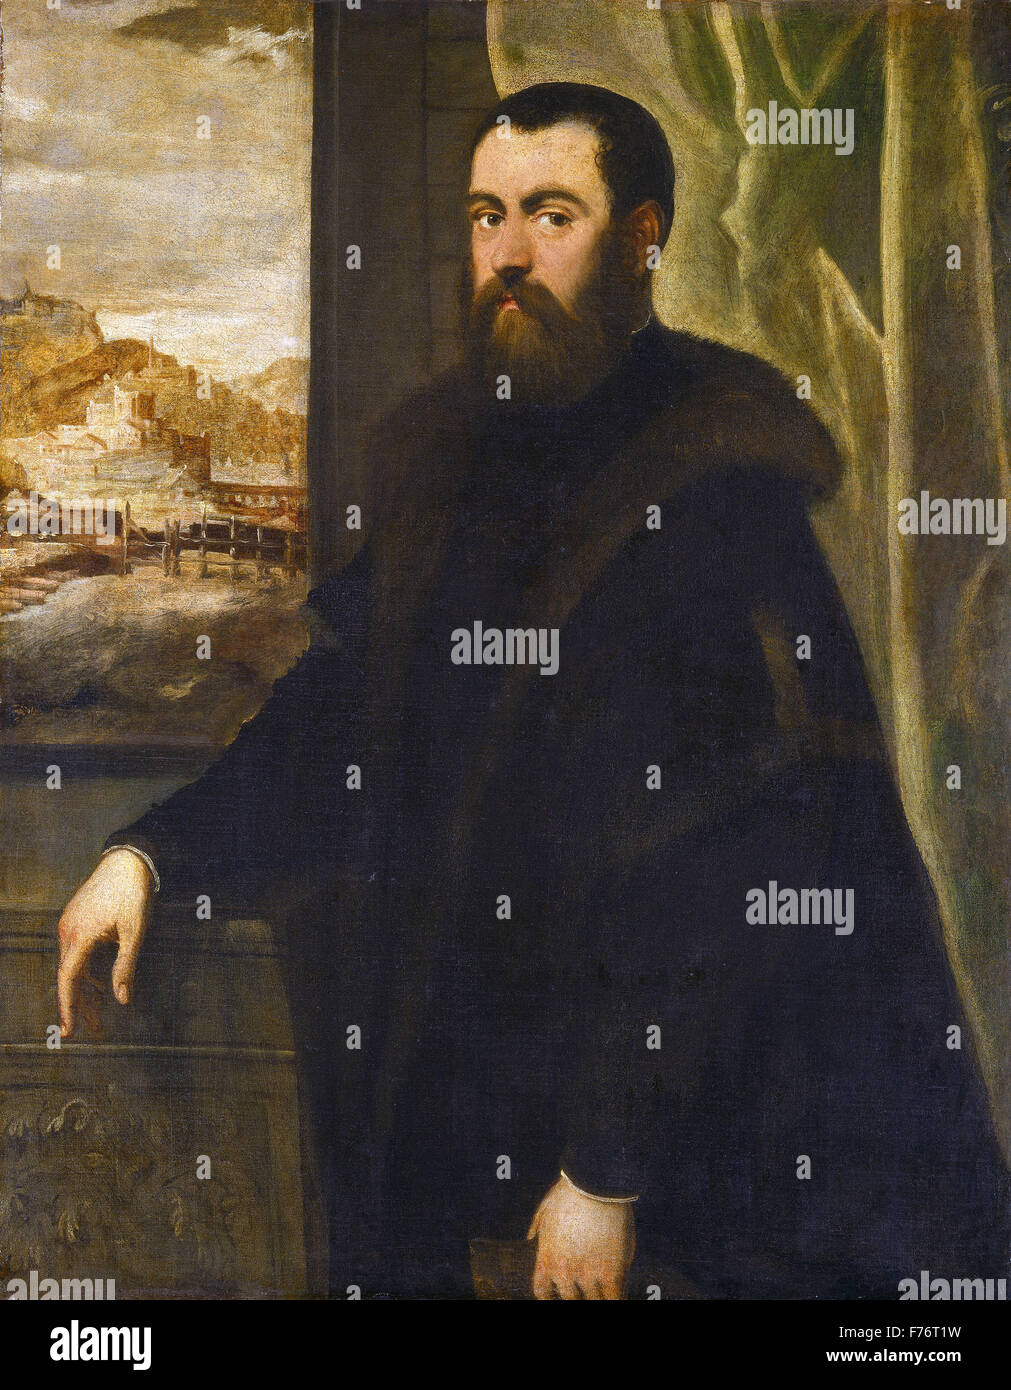 Jacopo Tintoretto - Portrait of a Venetian Senator - Stock Image